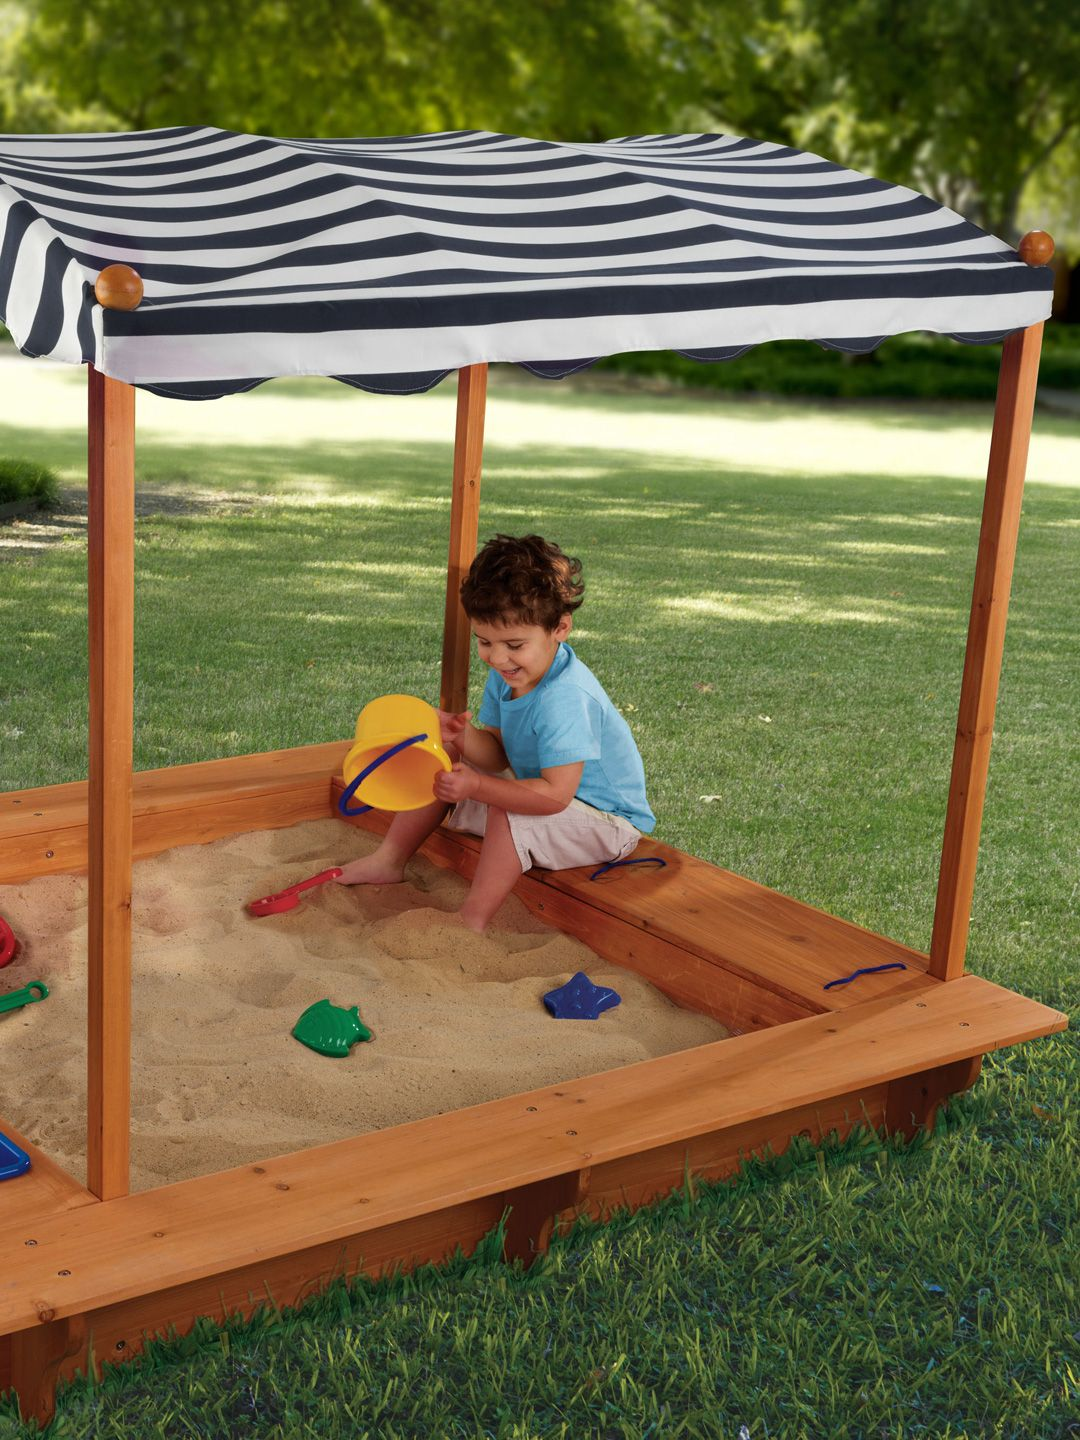 Outdoor Sandbox With Canopy by KidKraft at Gilt & Outdoor Sandbox With Canopy by KidKraft at Gilt | Kids Stuff ...